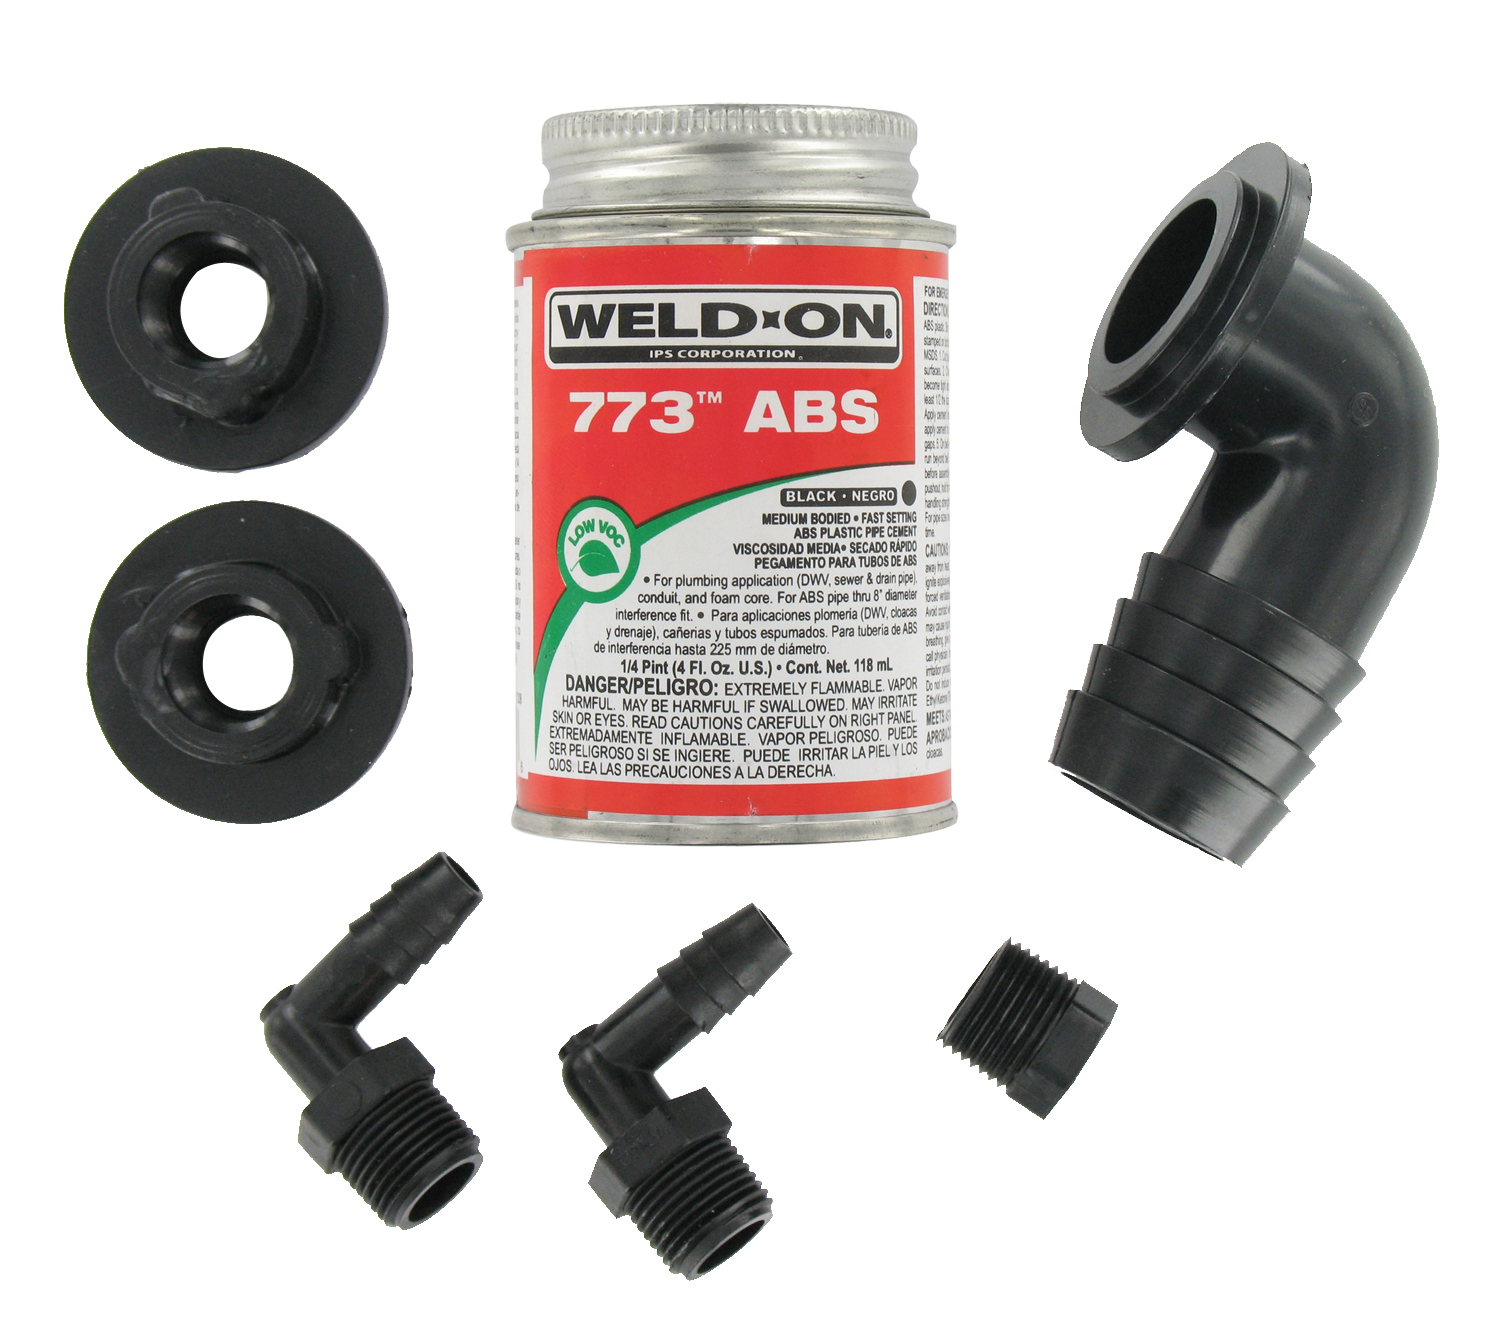 RK907 Valterra Fresh Water Tank Fill Kit With 1-1/4 Inch 90 Degree